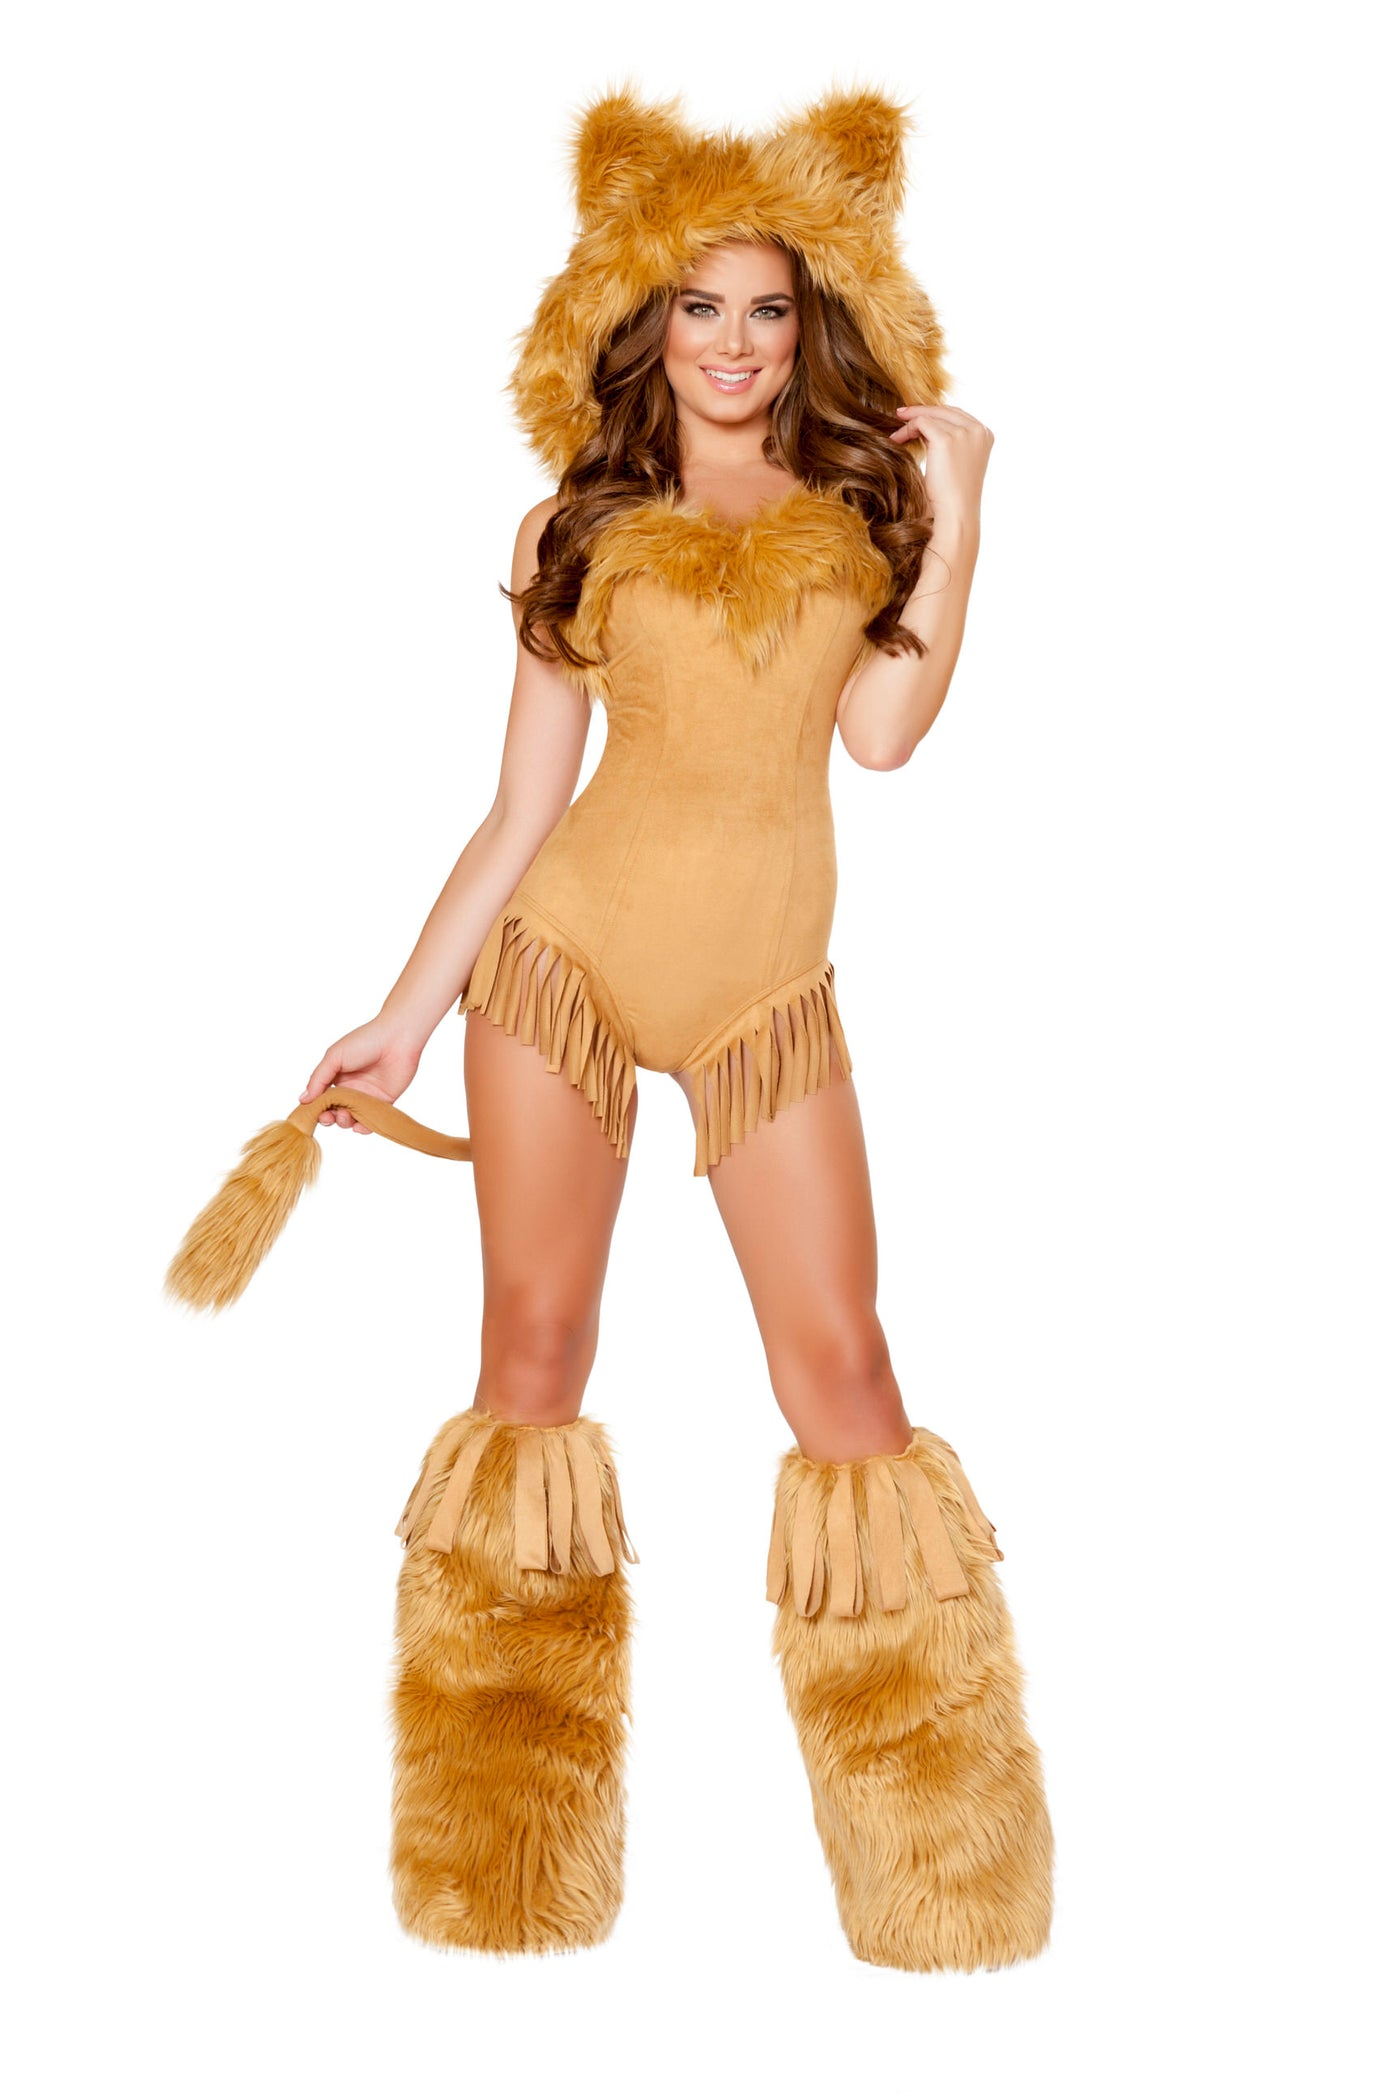 2d90655bc314 1-Piece-Lion-Hooded-Fur-Romper-w -Attached · 1 Piece Lion Hooded Fur Romper  w  Attached Tail Party Costume - Fest Threads ...